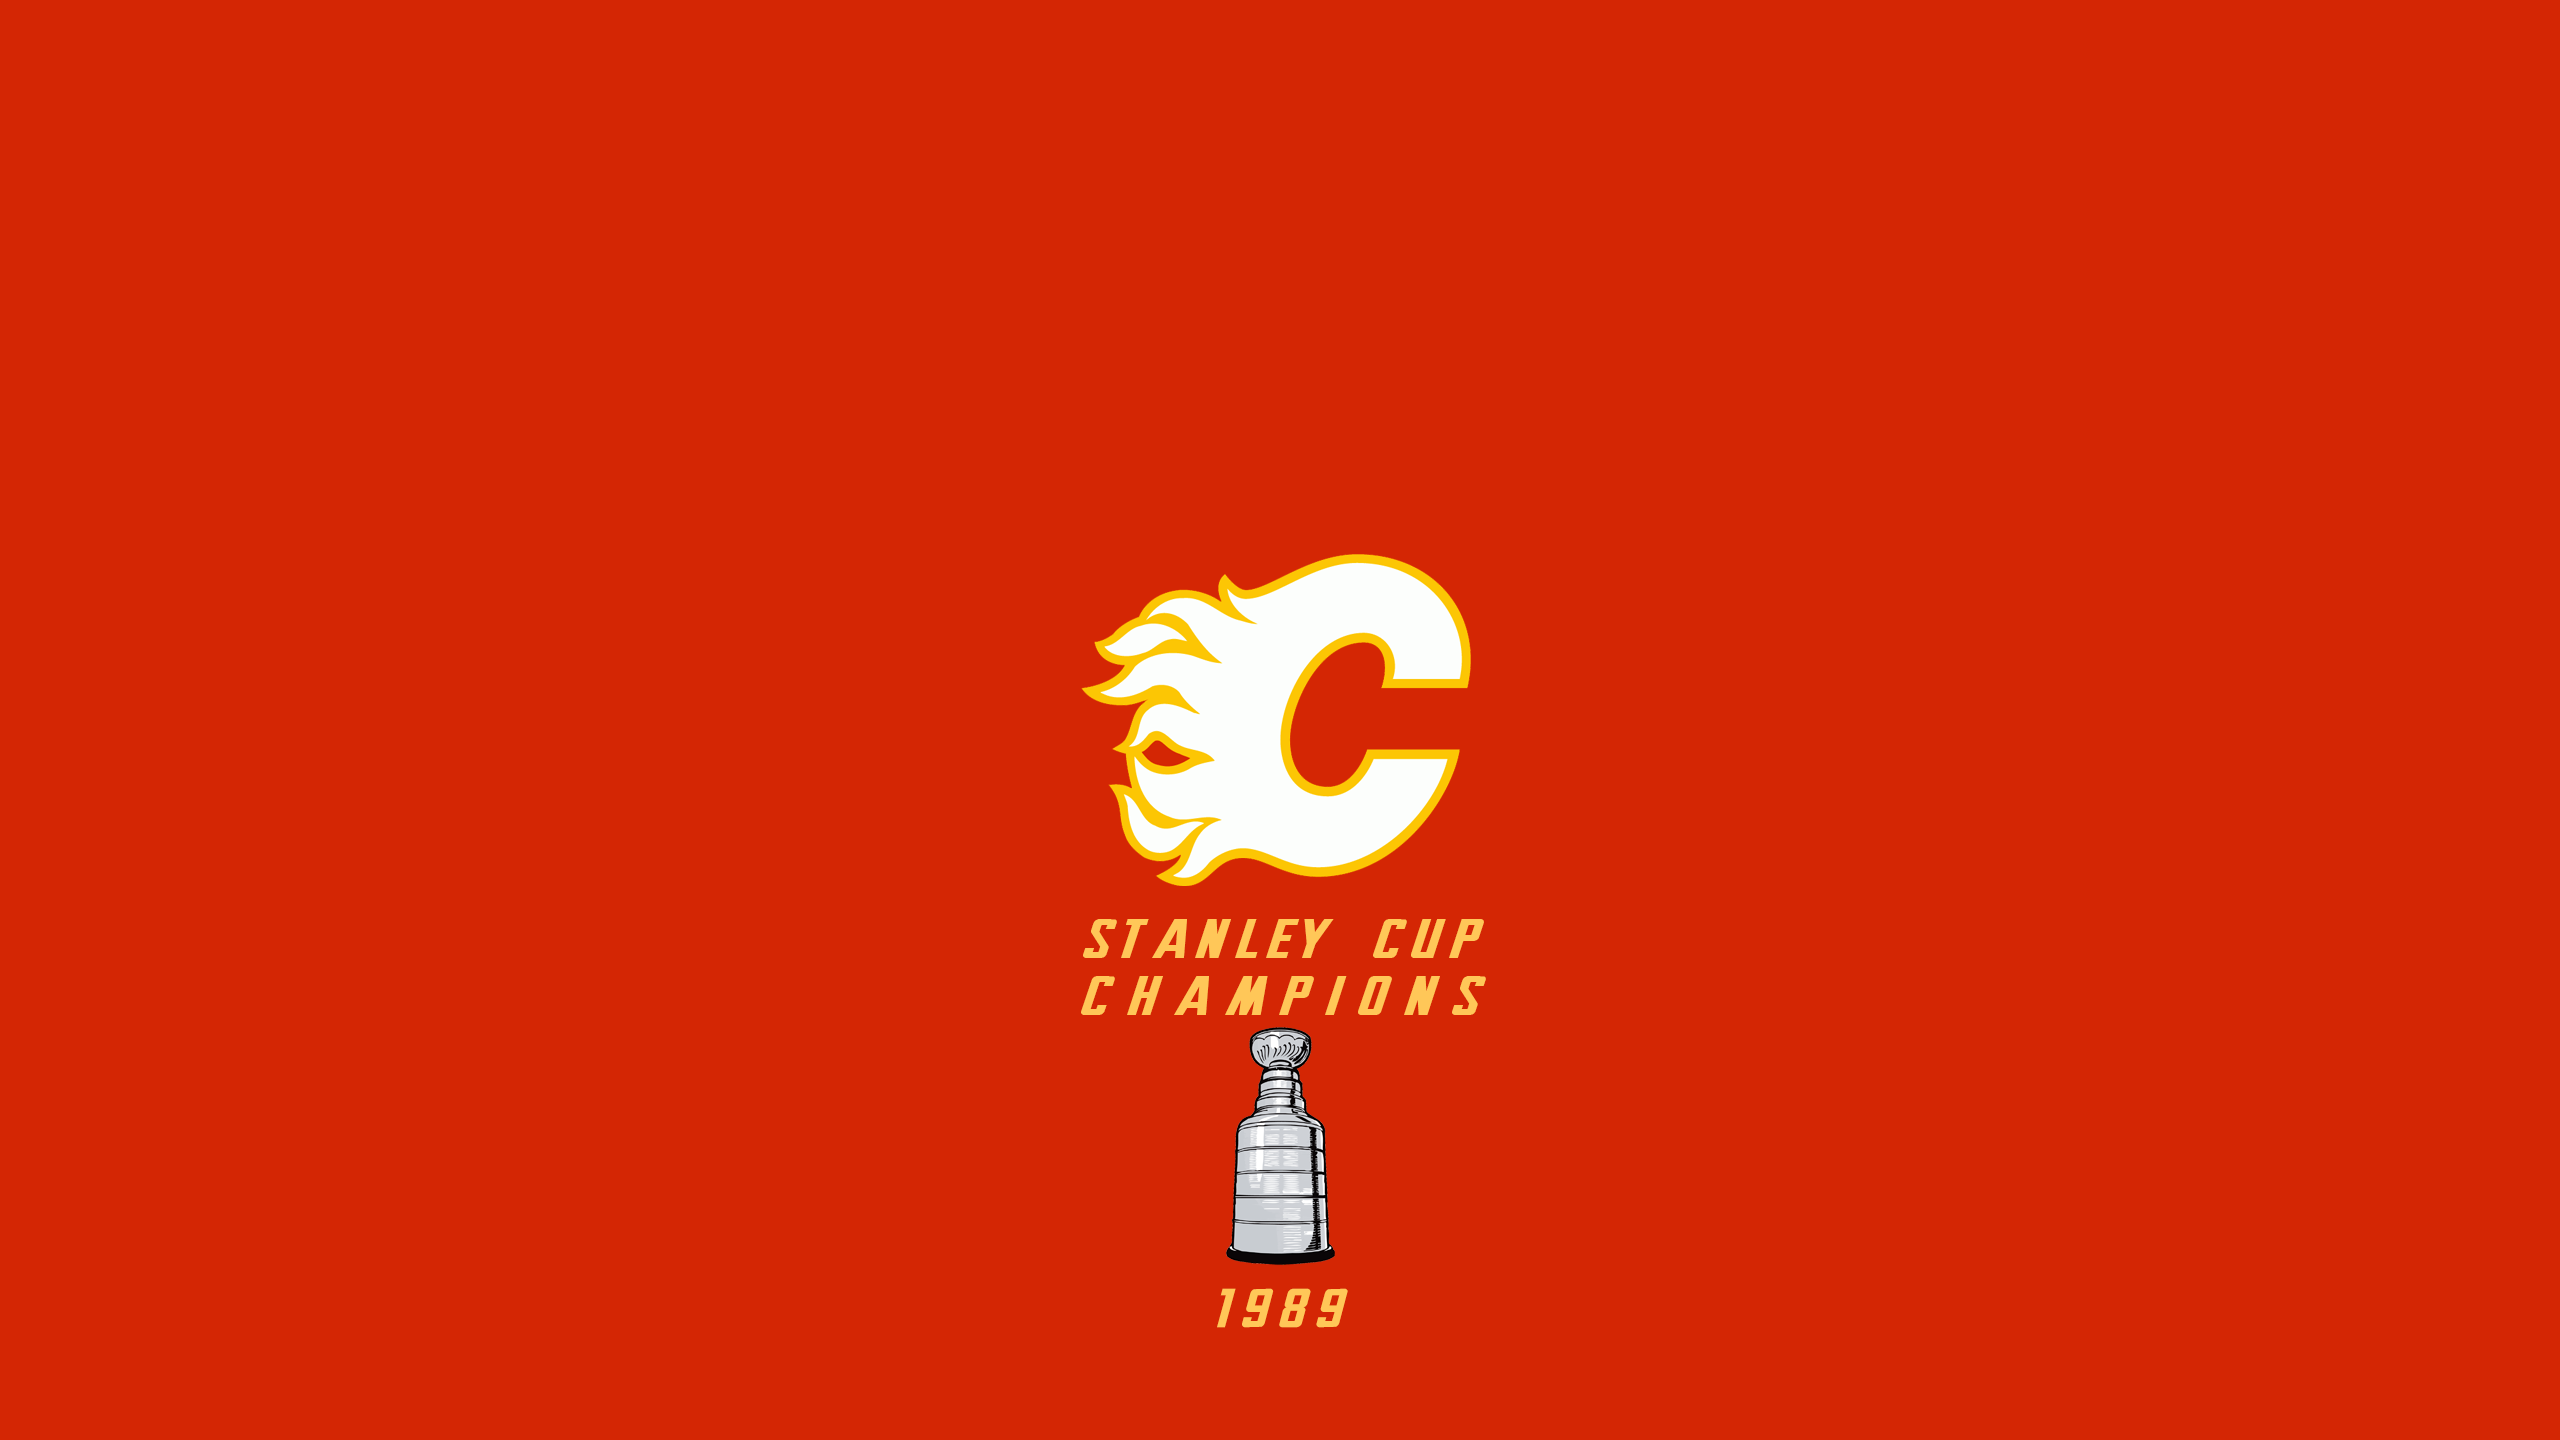 Calgary Flames - Stanley Cup